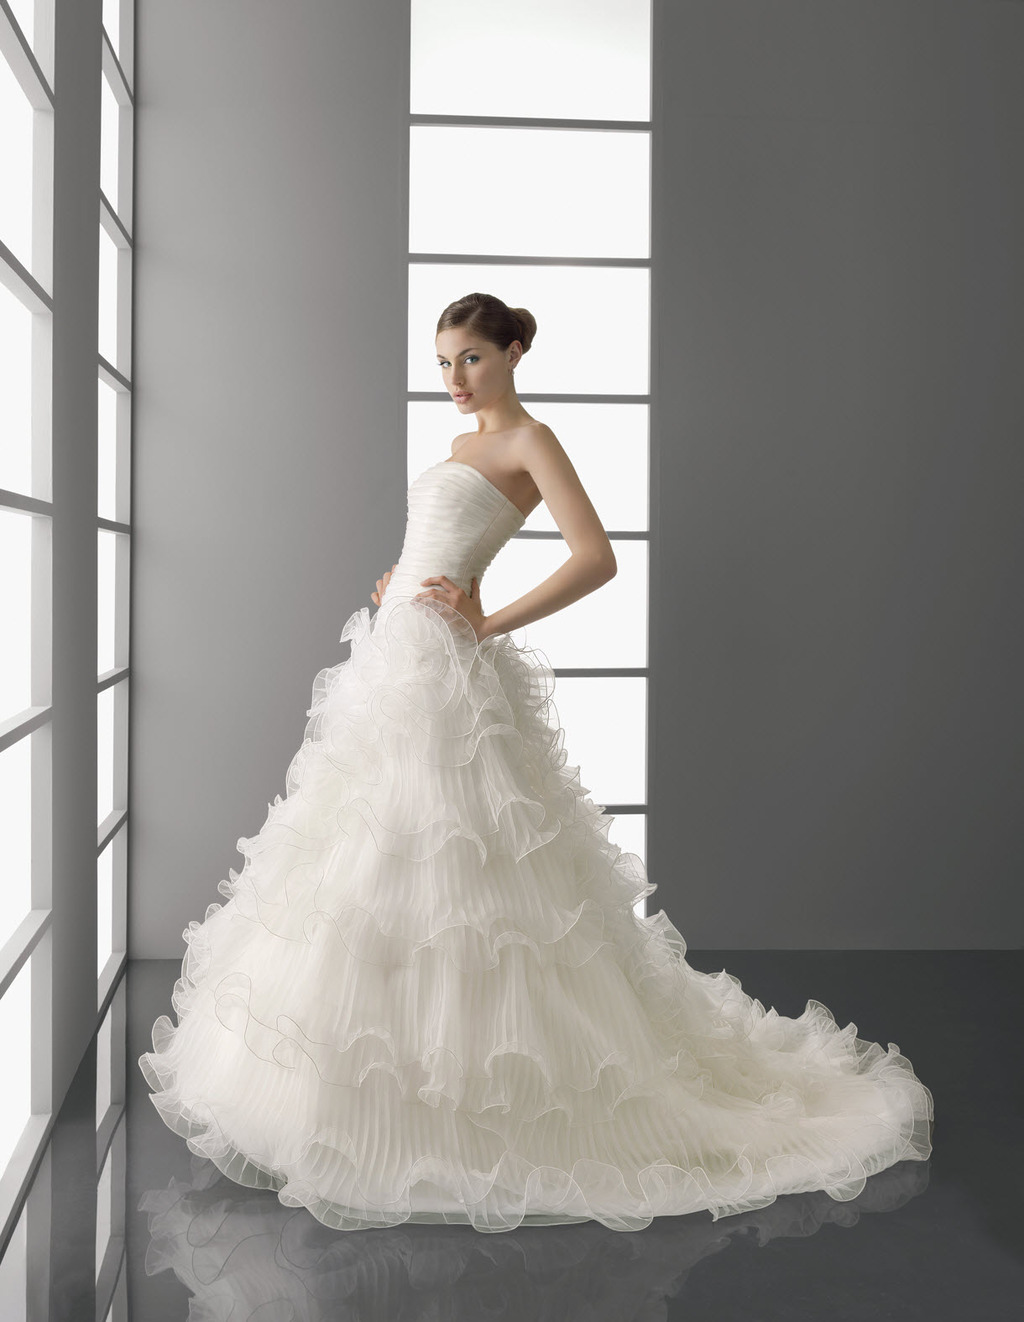 Park-wedding-dress-spring-2012-aire-barcelona-bridal-gown-romantic.full